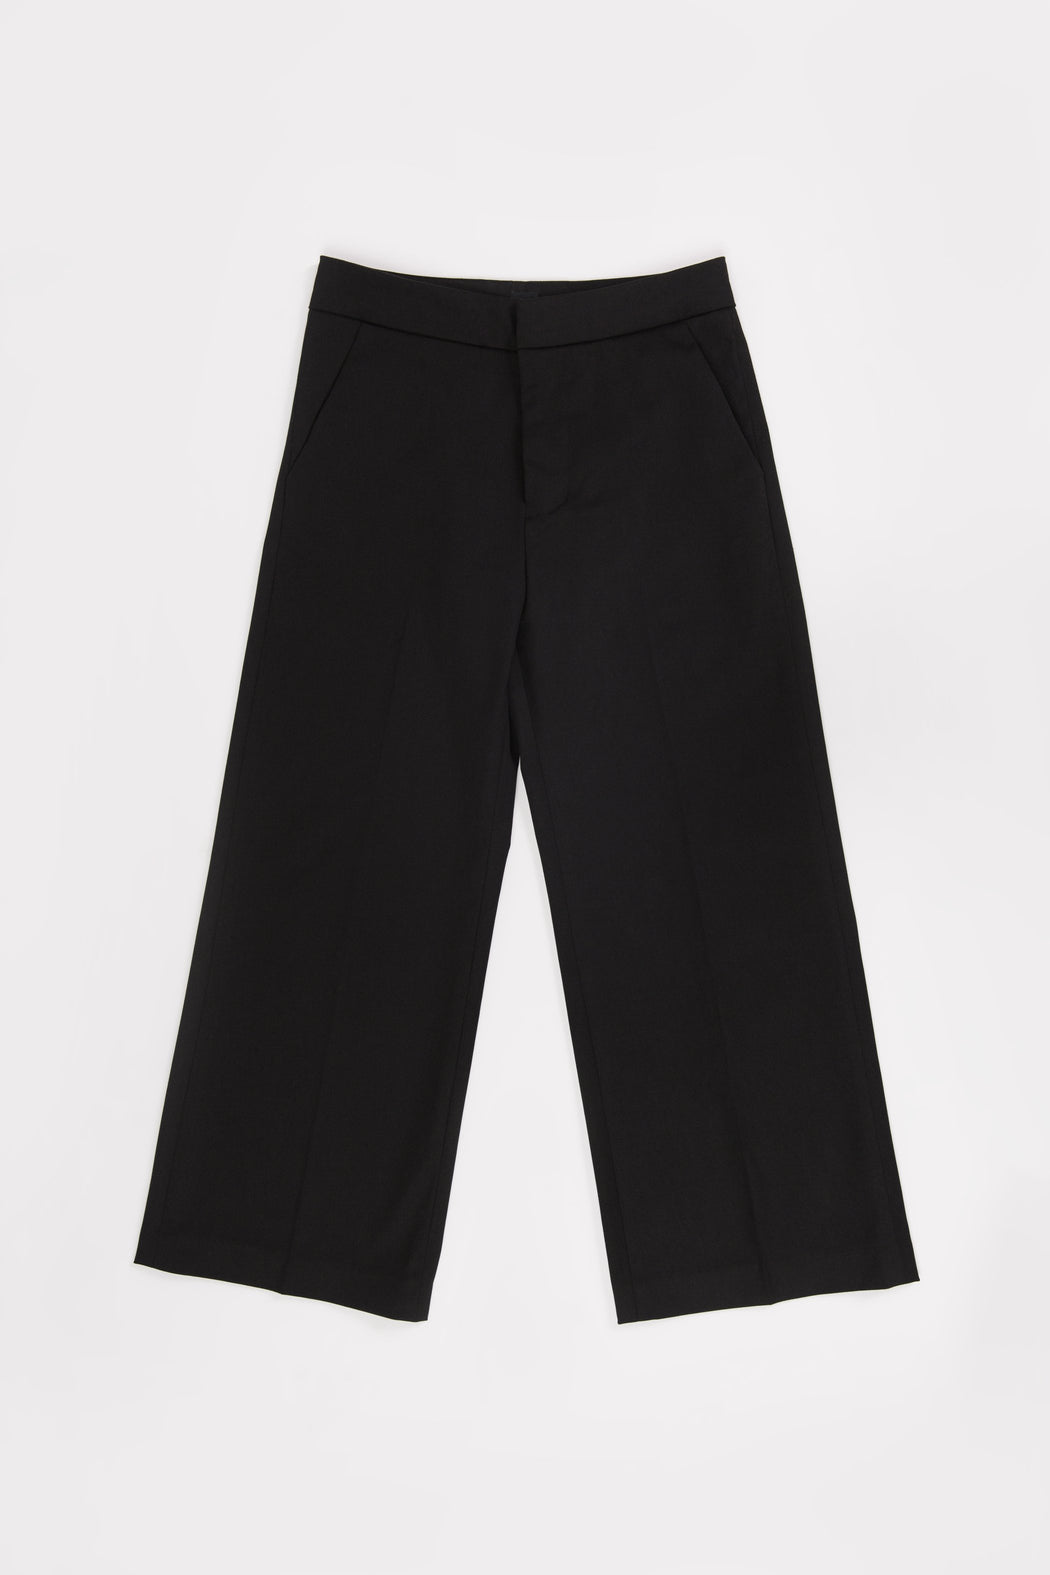 The Gloria Pant - flat lay